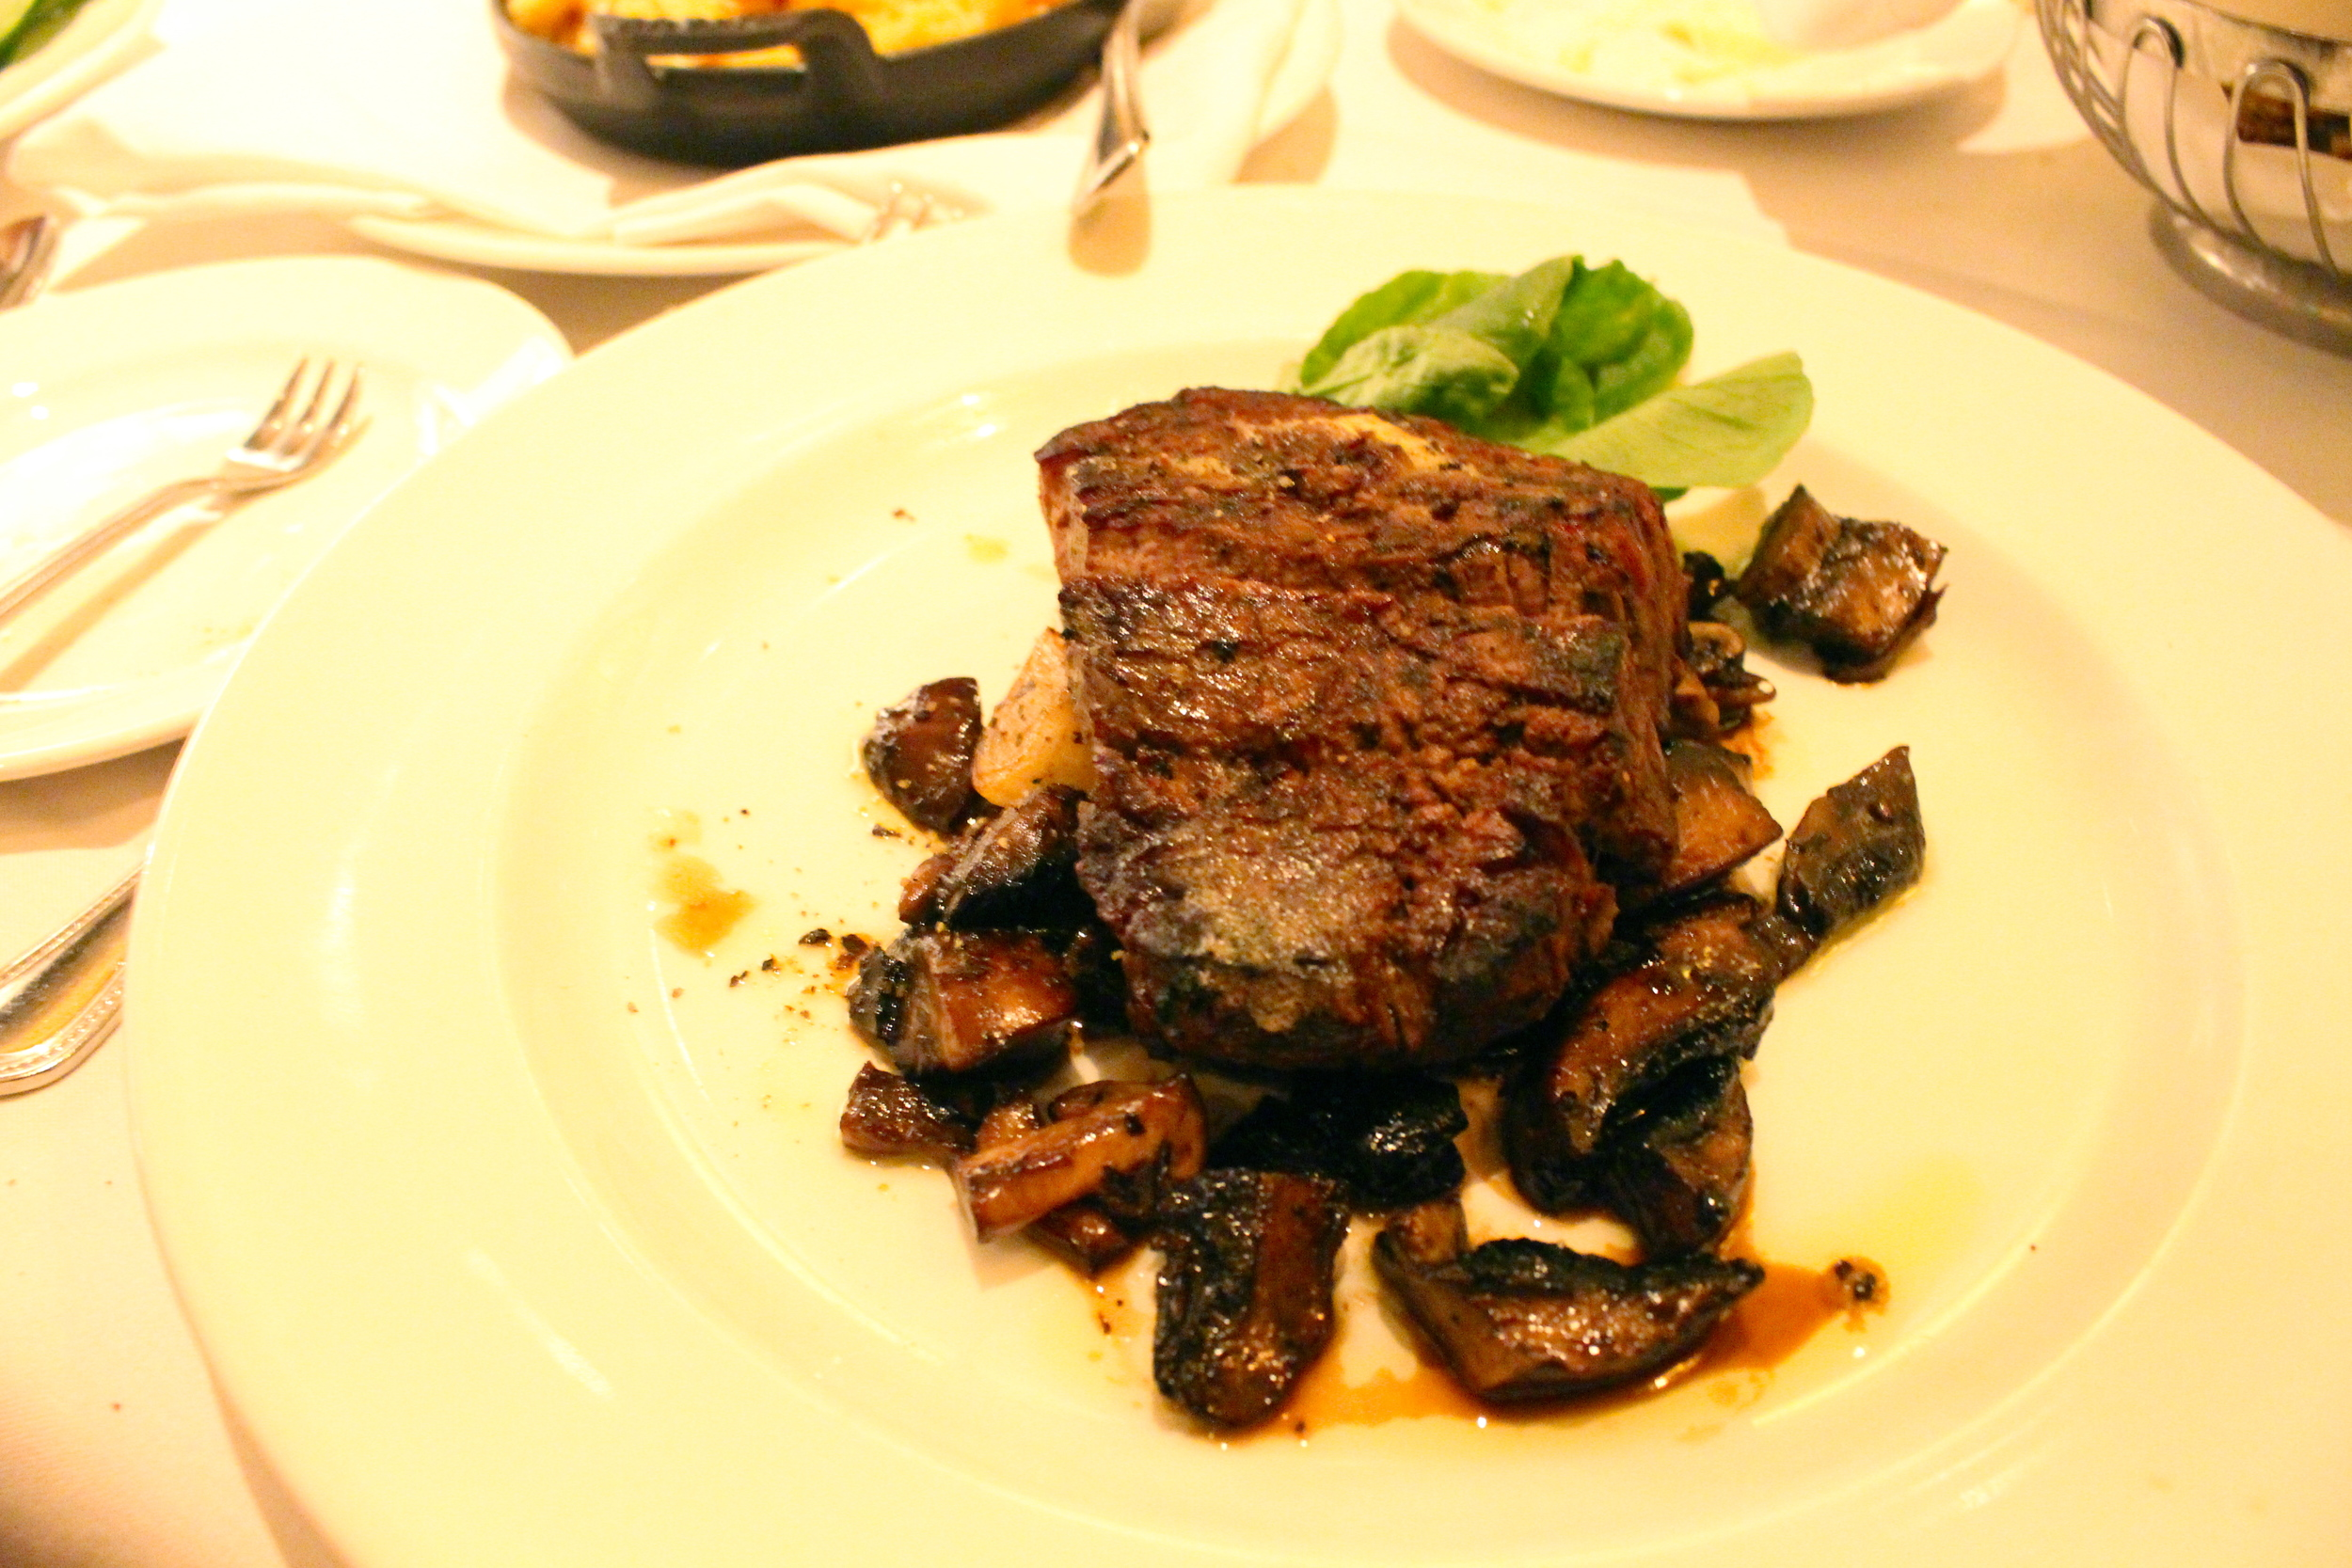 Sliced Filet Mignon with Cipollini Onions and Wild Mushrooms